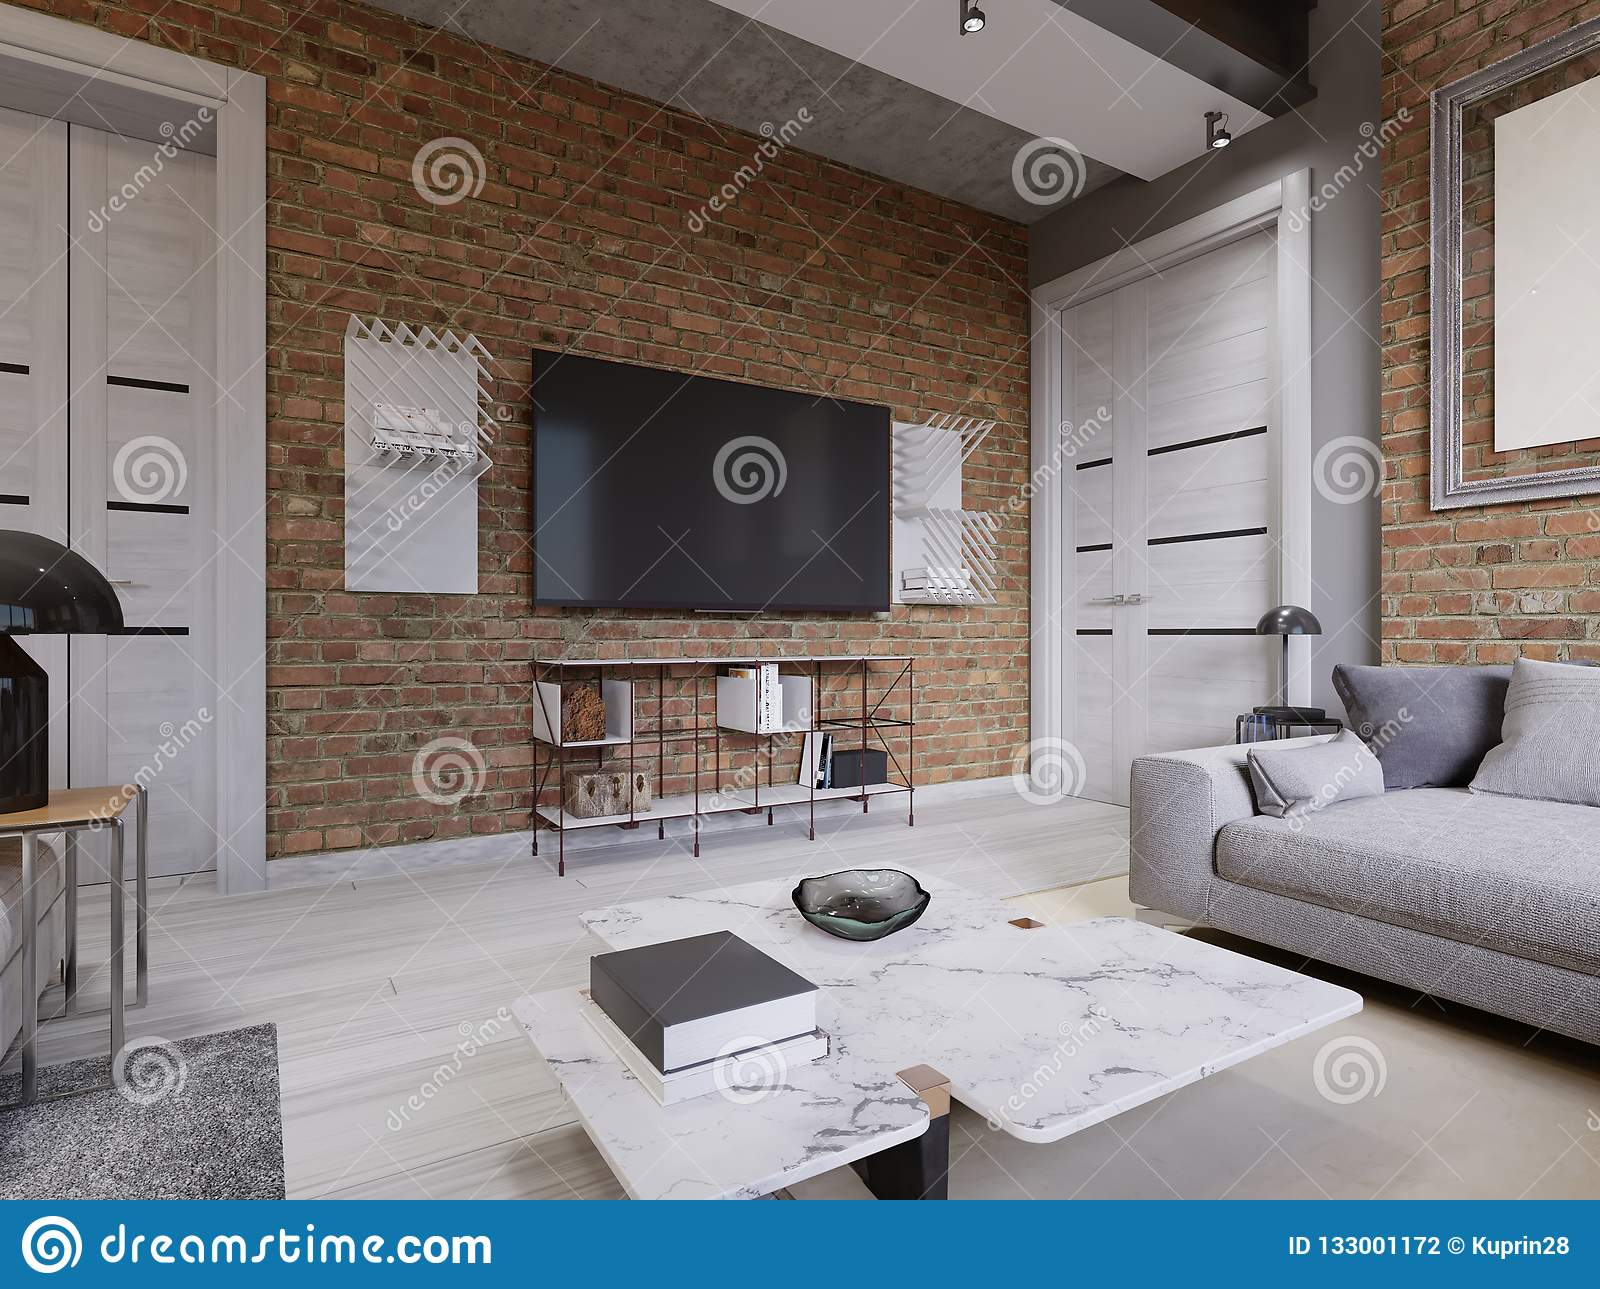 exciting brick wall inside living room | Modern Living Room Interior, Tv Mounted On Brick Wall With ...